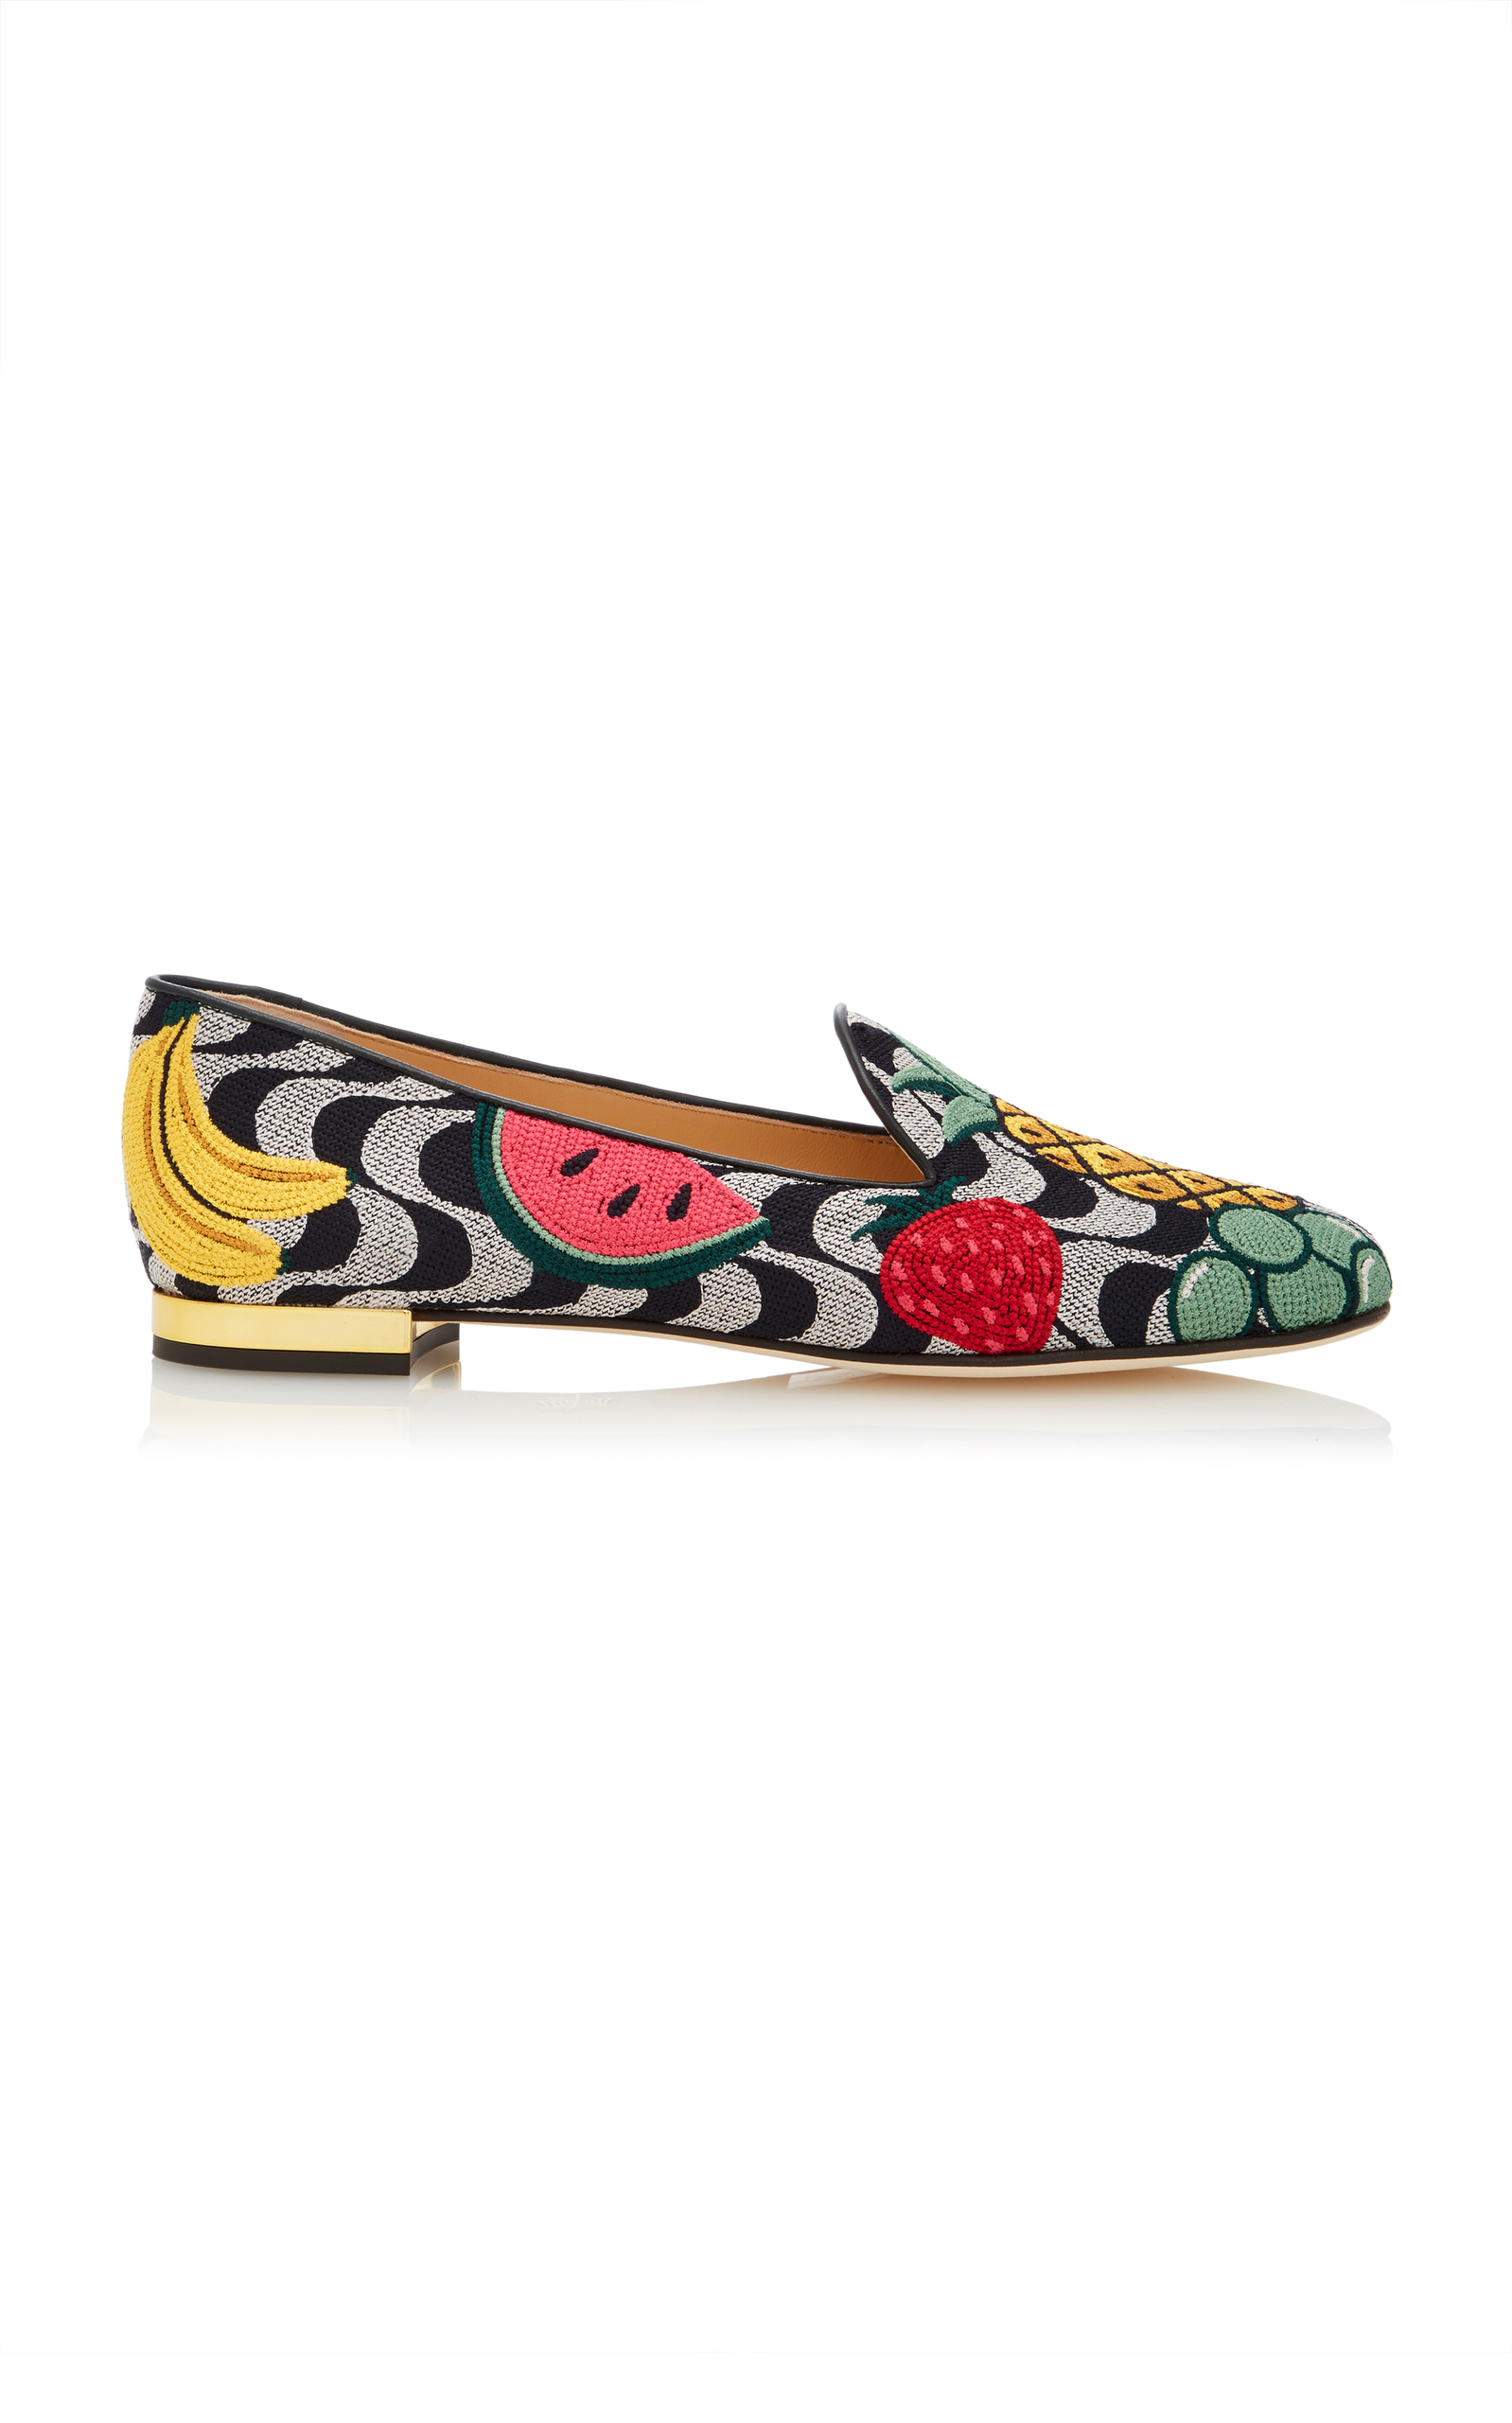 Charlotte Olympia Designer Shoes, Fruit Salad Embroidered Canvas Slippers